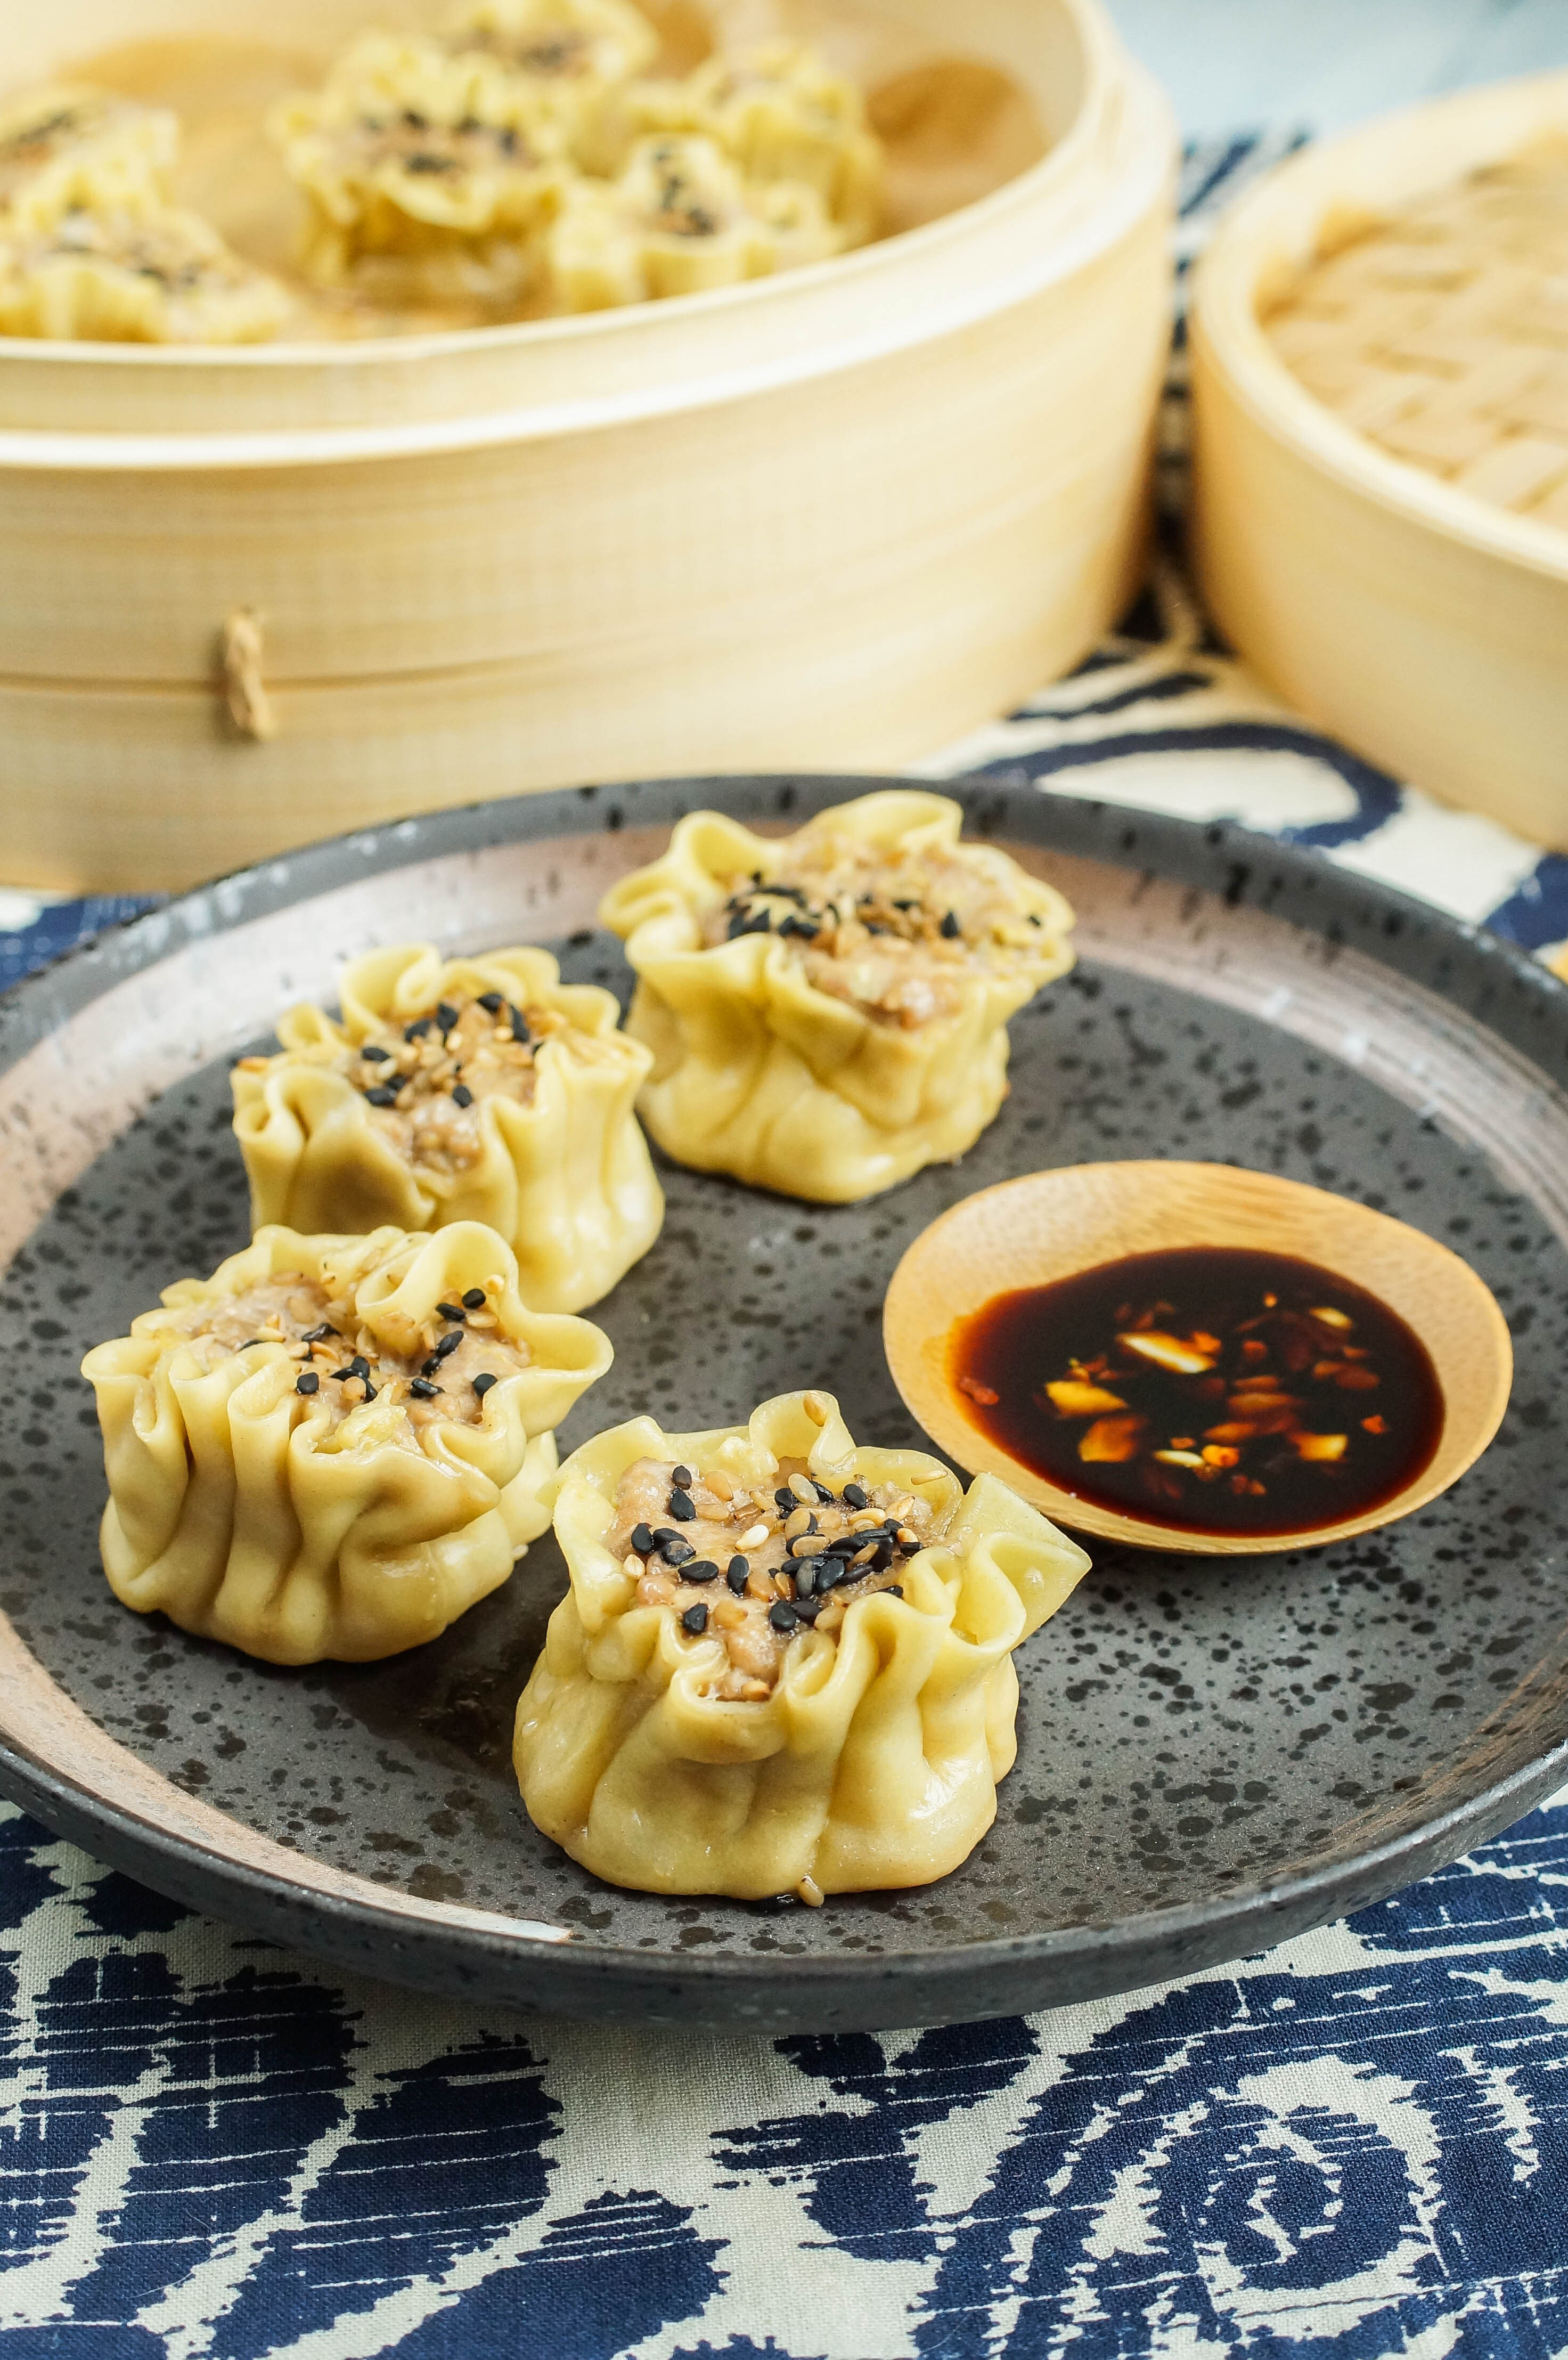 The Filipino-American Kitchen Cookbook Review and Shumai (Filipino Pork and Ginger Dumplings)